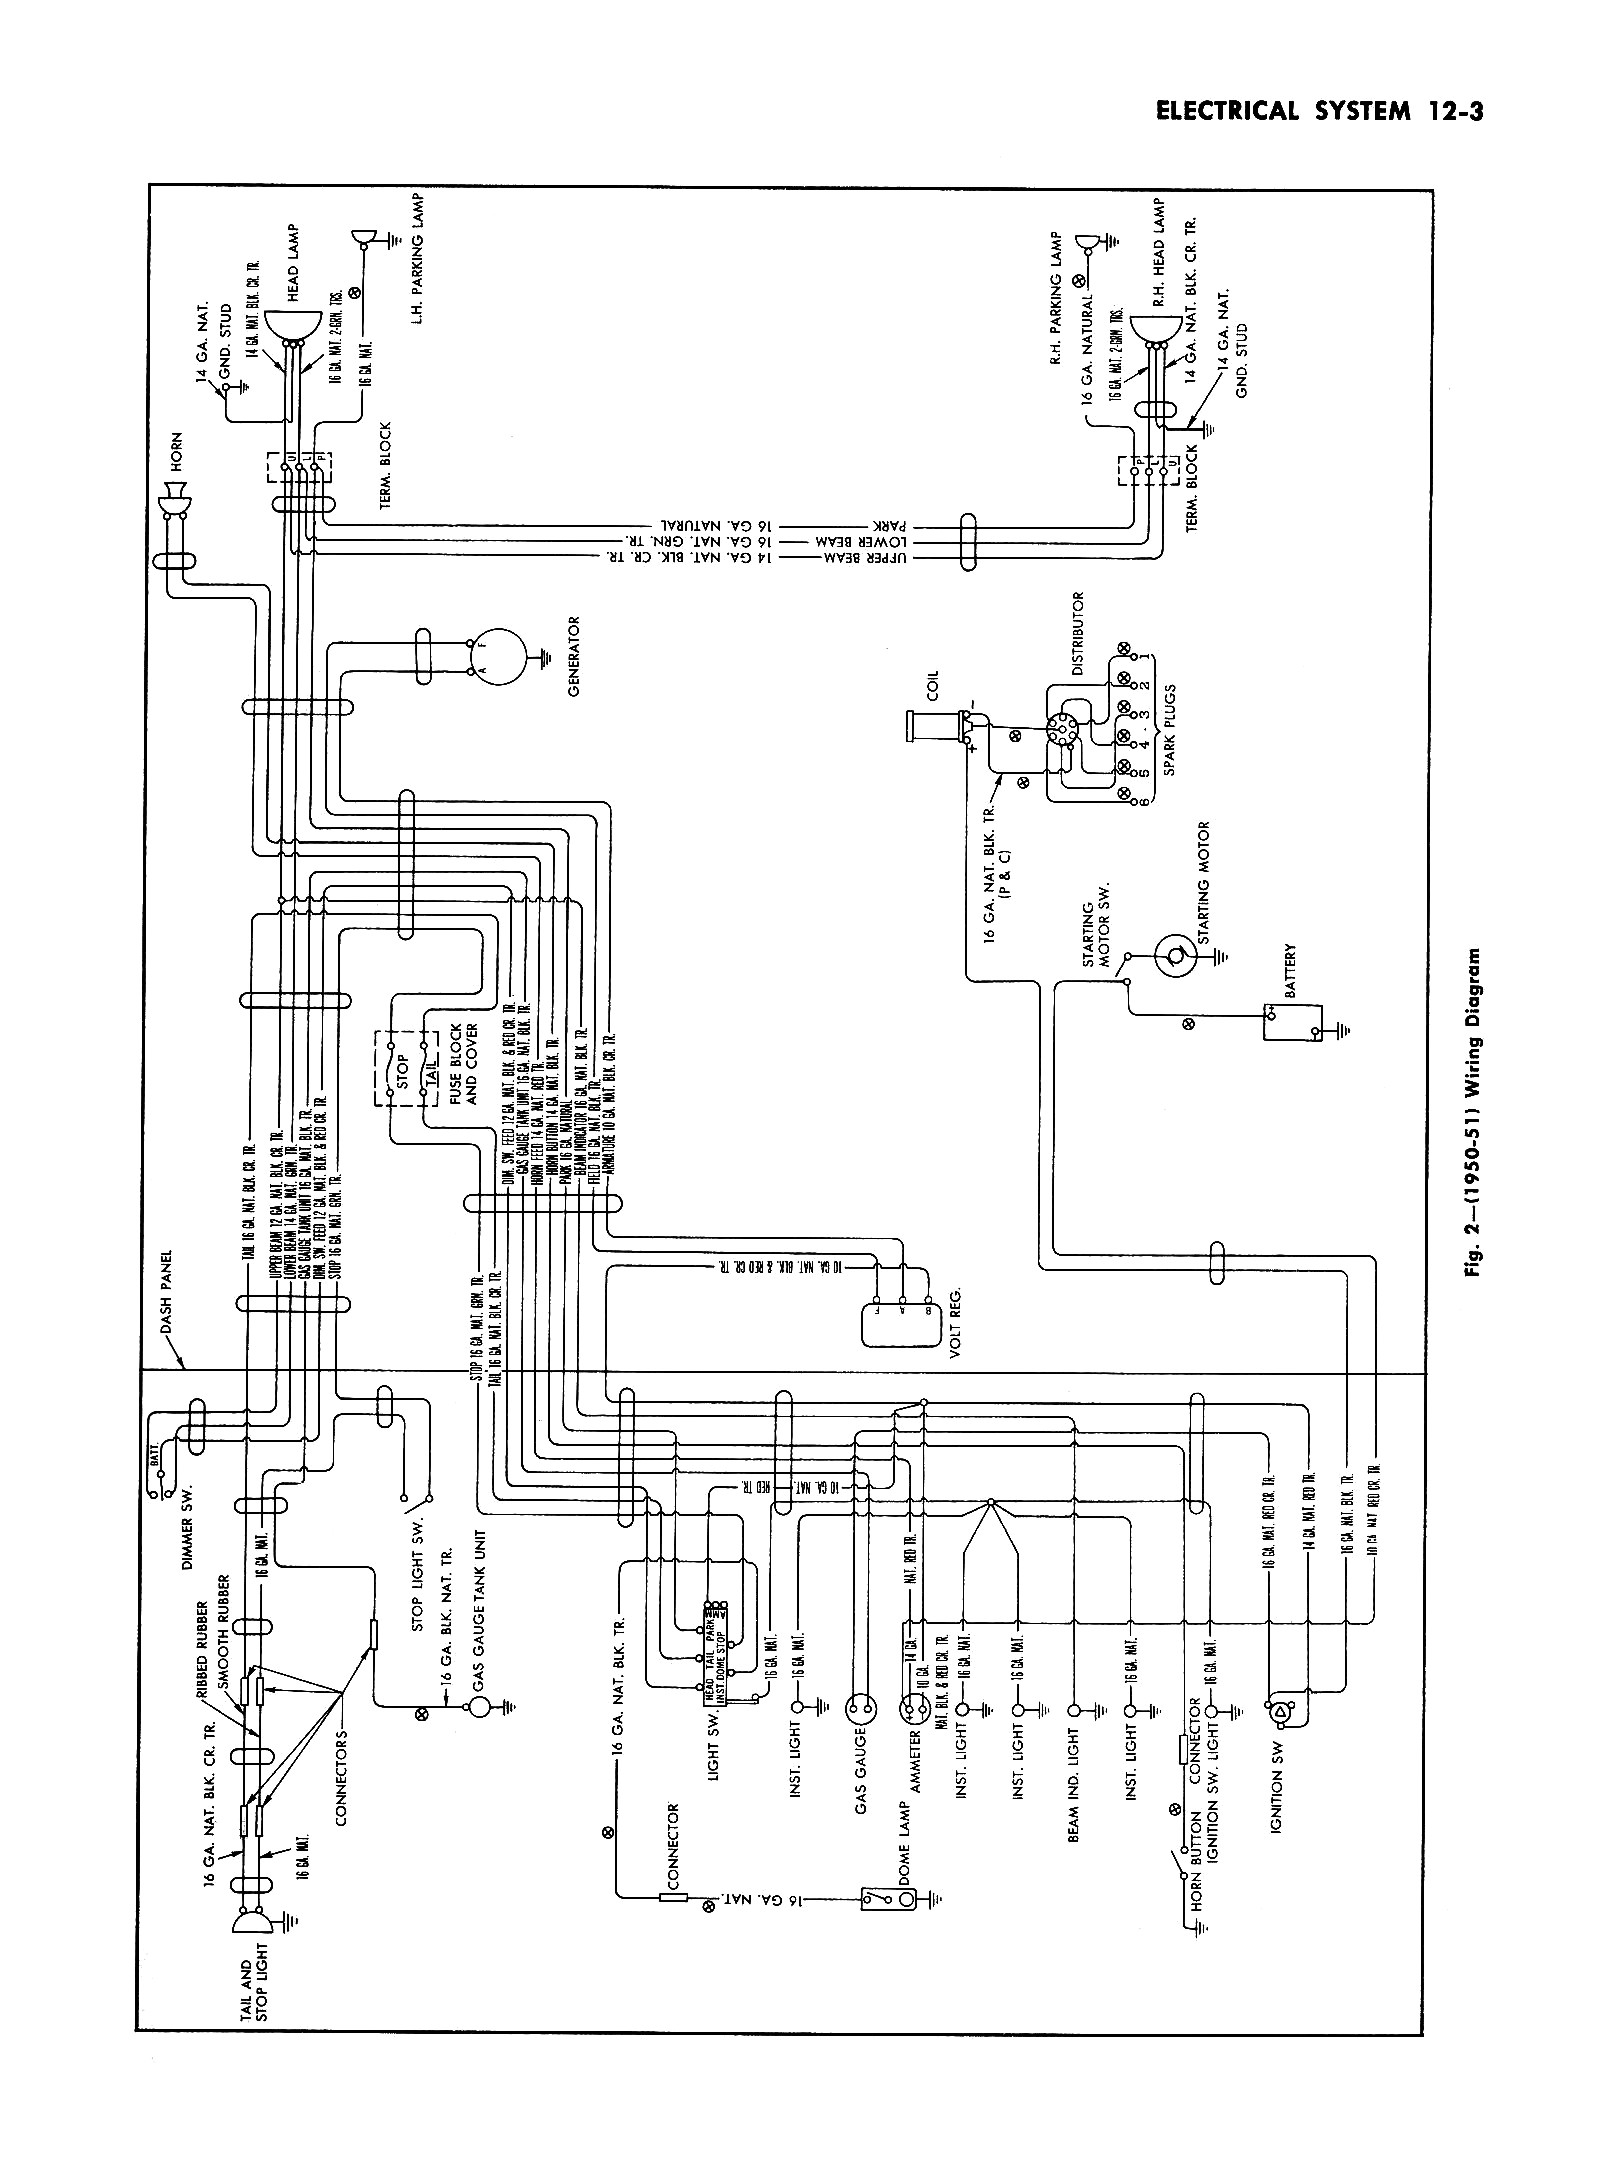 50car1 chevy wiring diagrams 66 chevy truck turn signal wiring diagram at soozxer.org